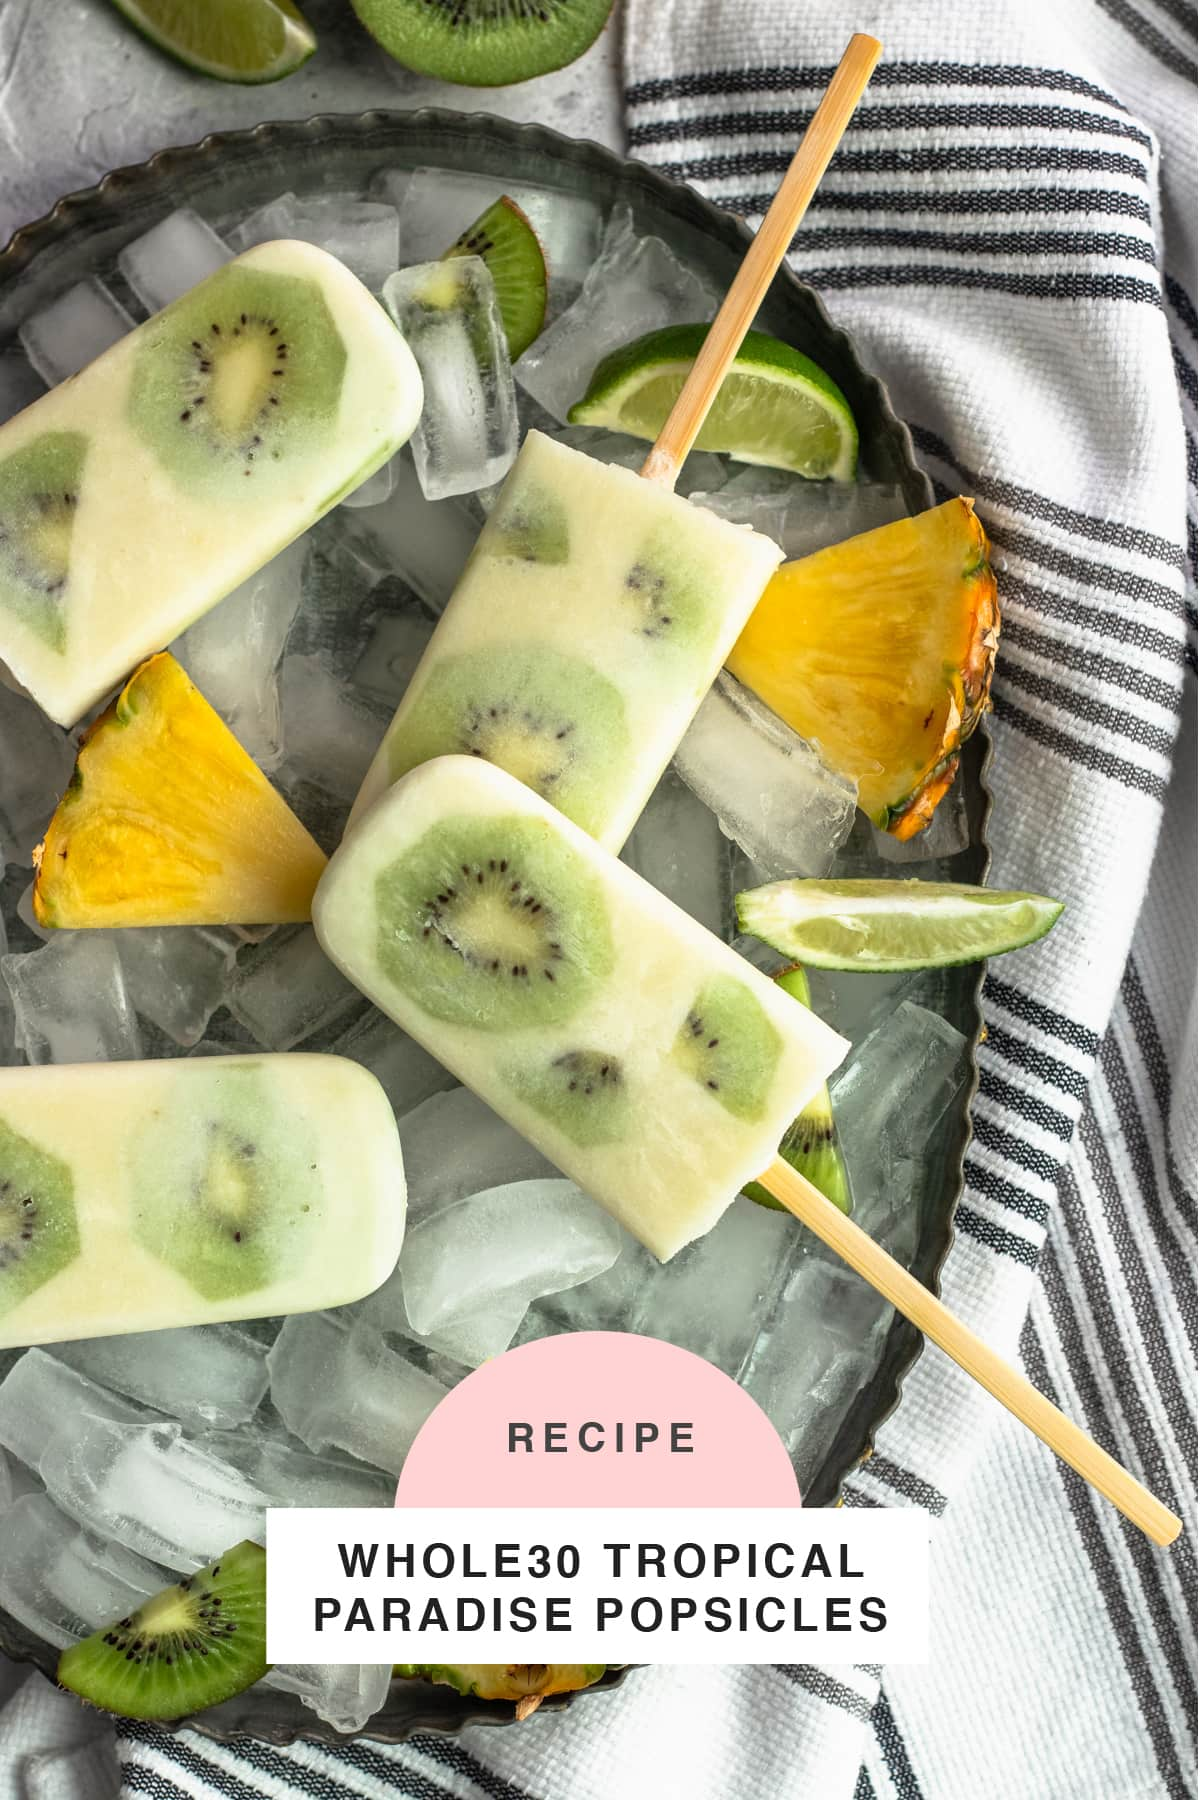 Whole30 Tropical Paradise Popsicles top Houston lifestyle blogger Ashley Rose of Sugar & Cloth